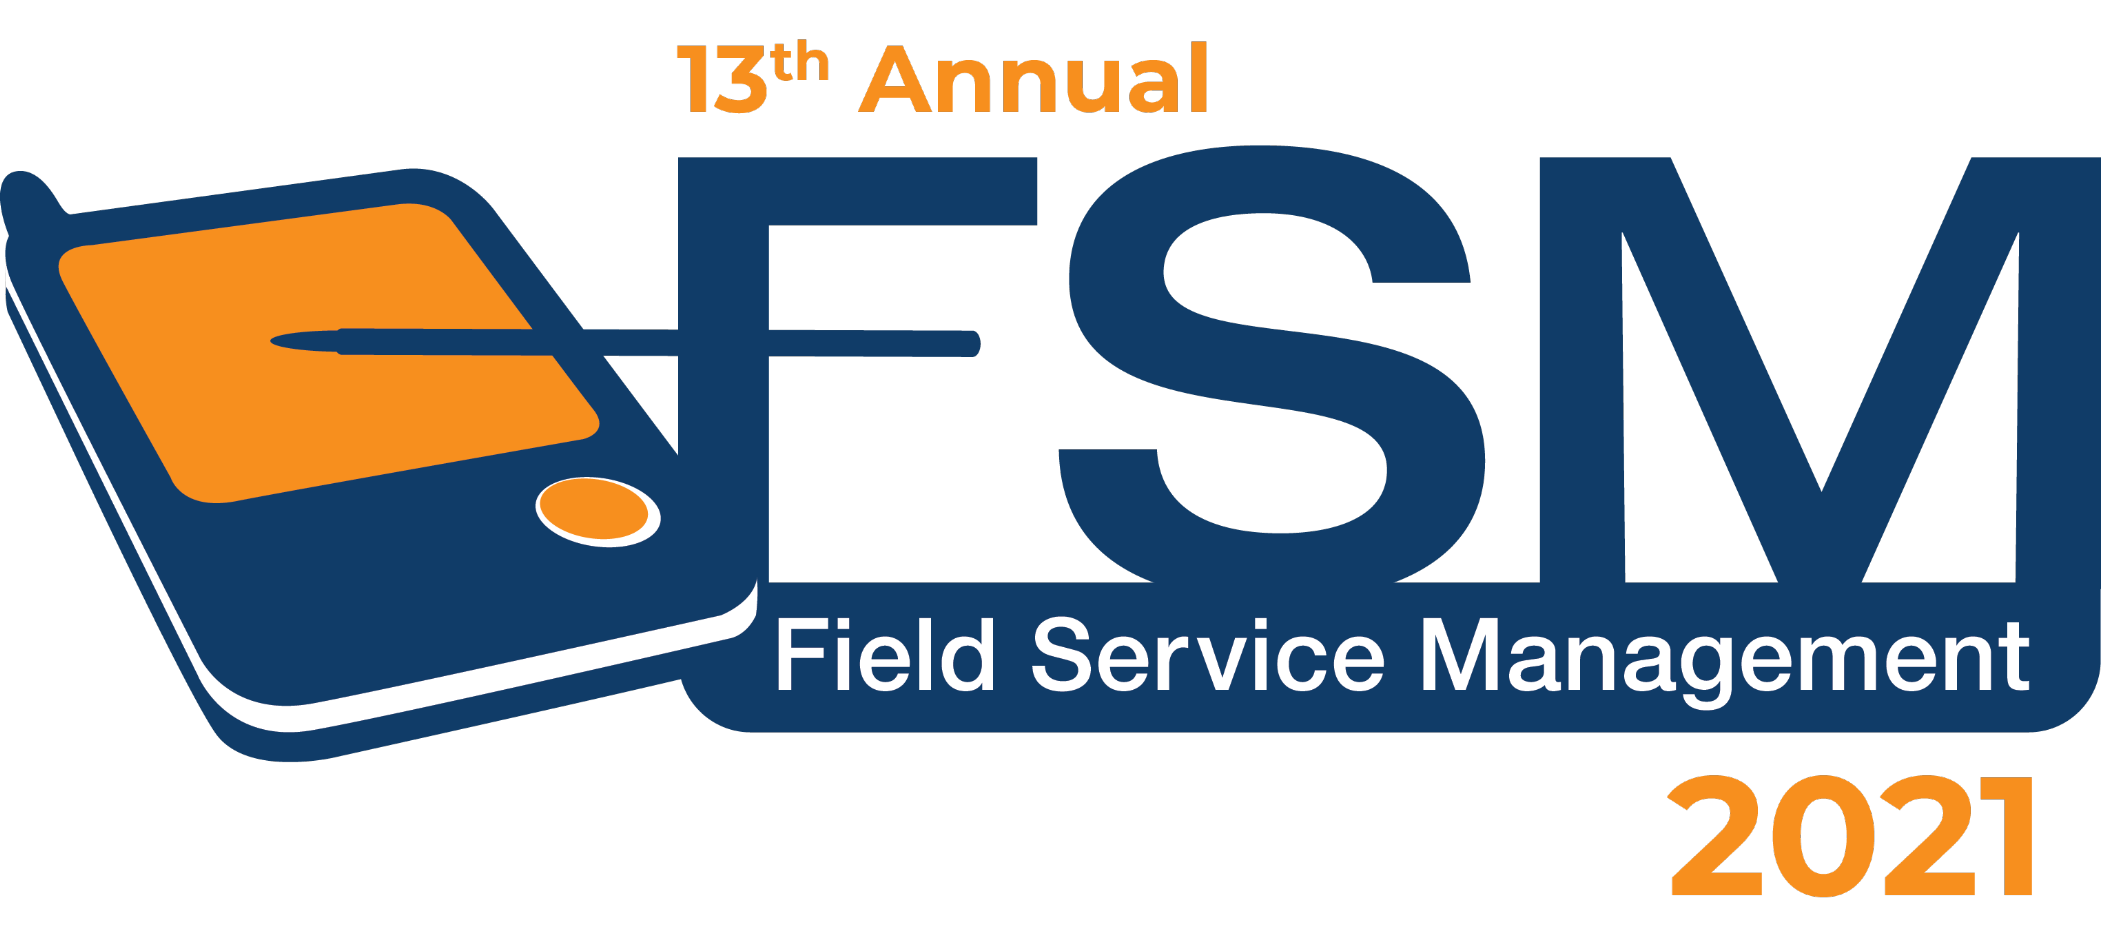 Field Service Management 2020 Virtual Summit